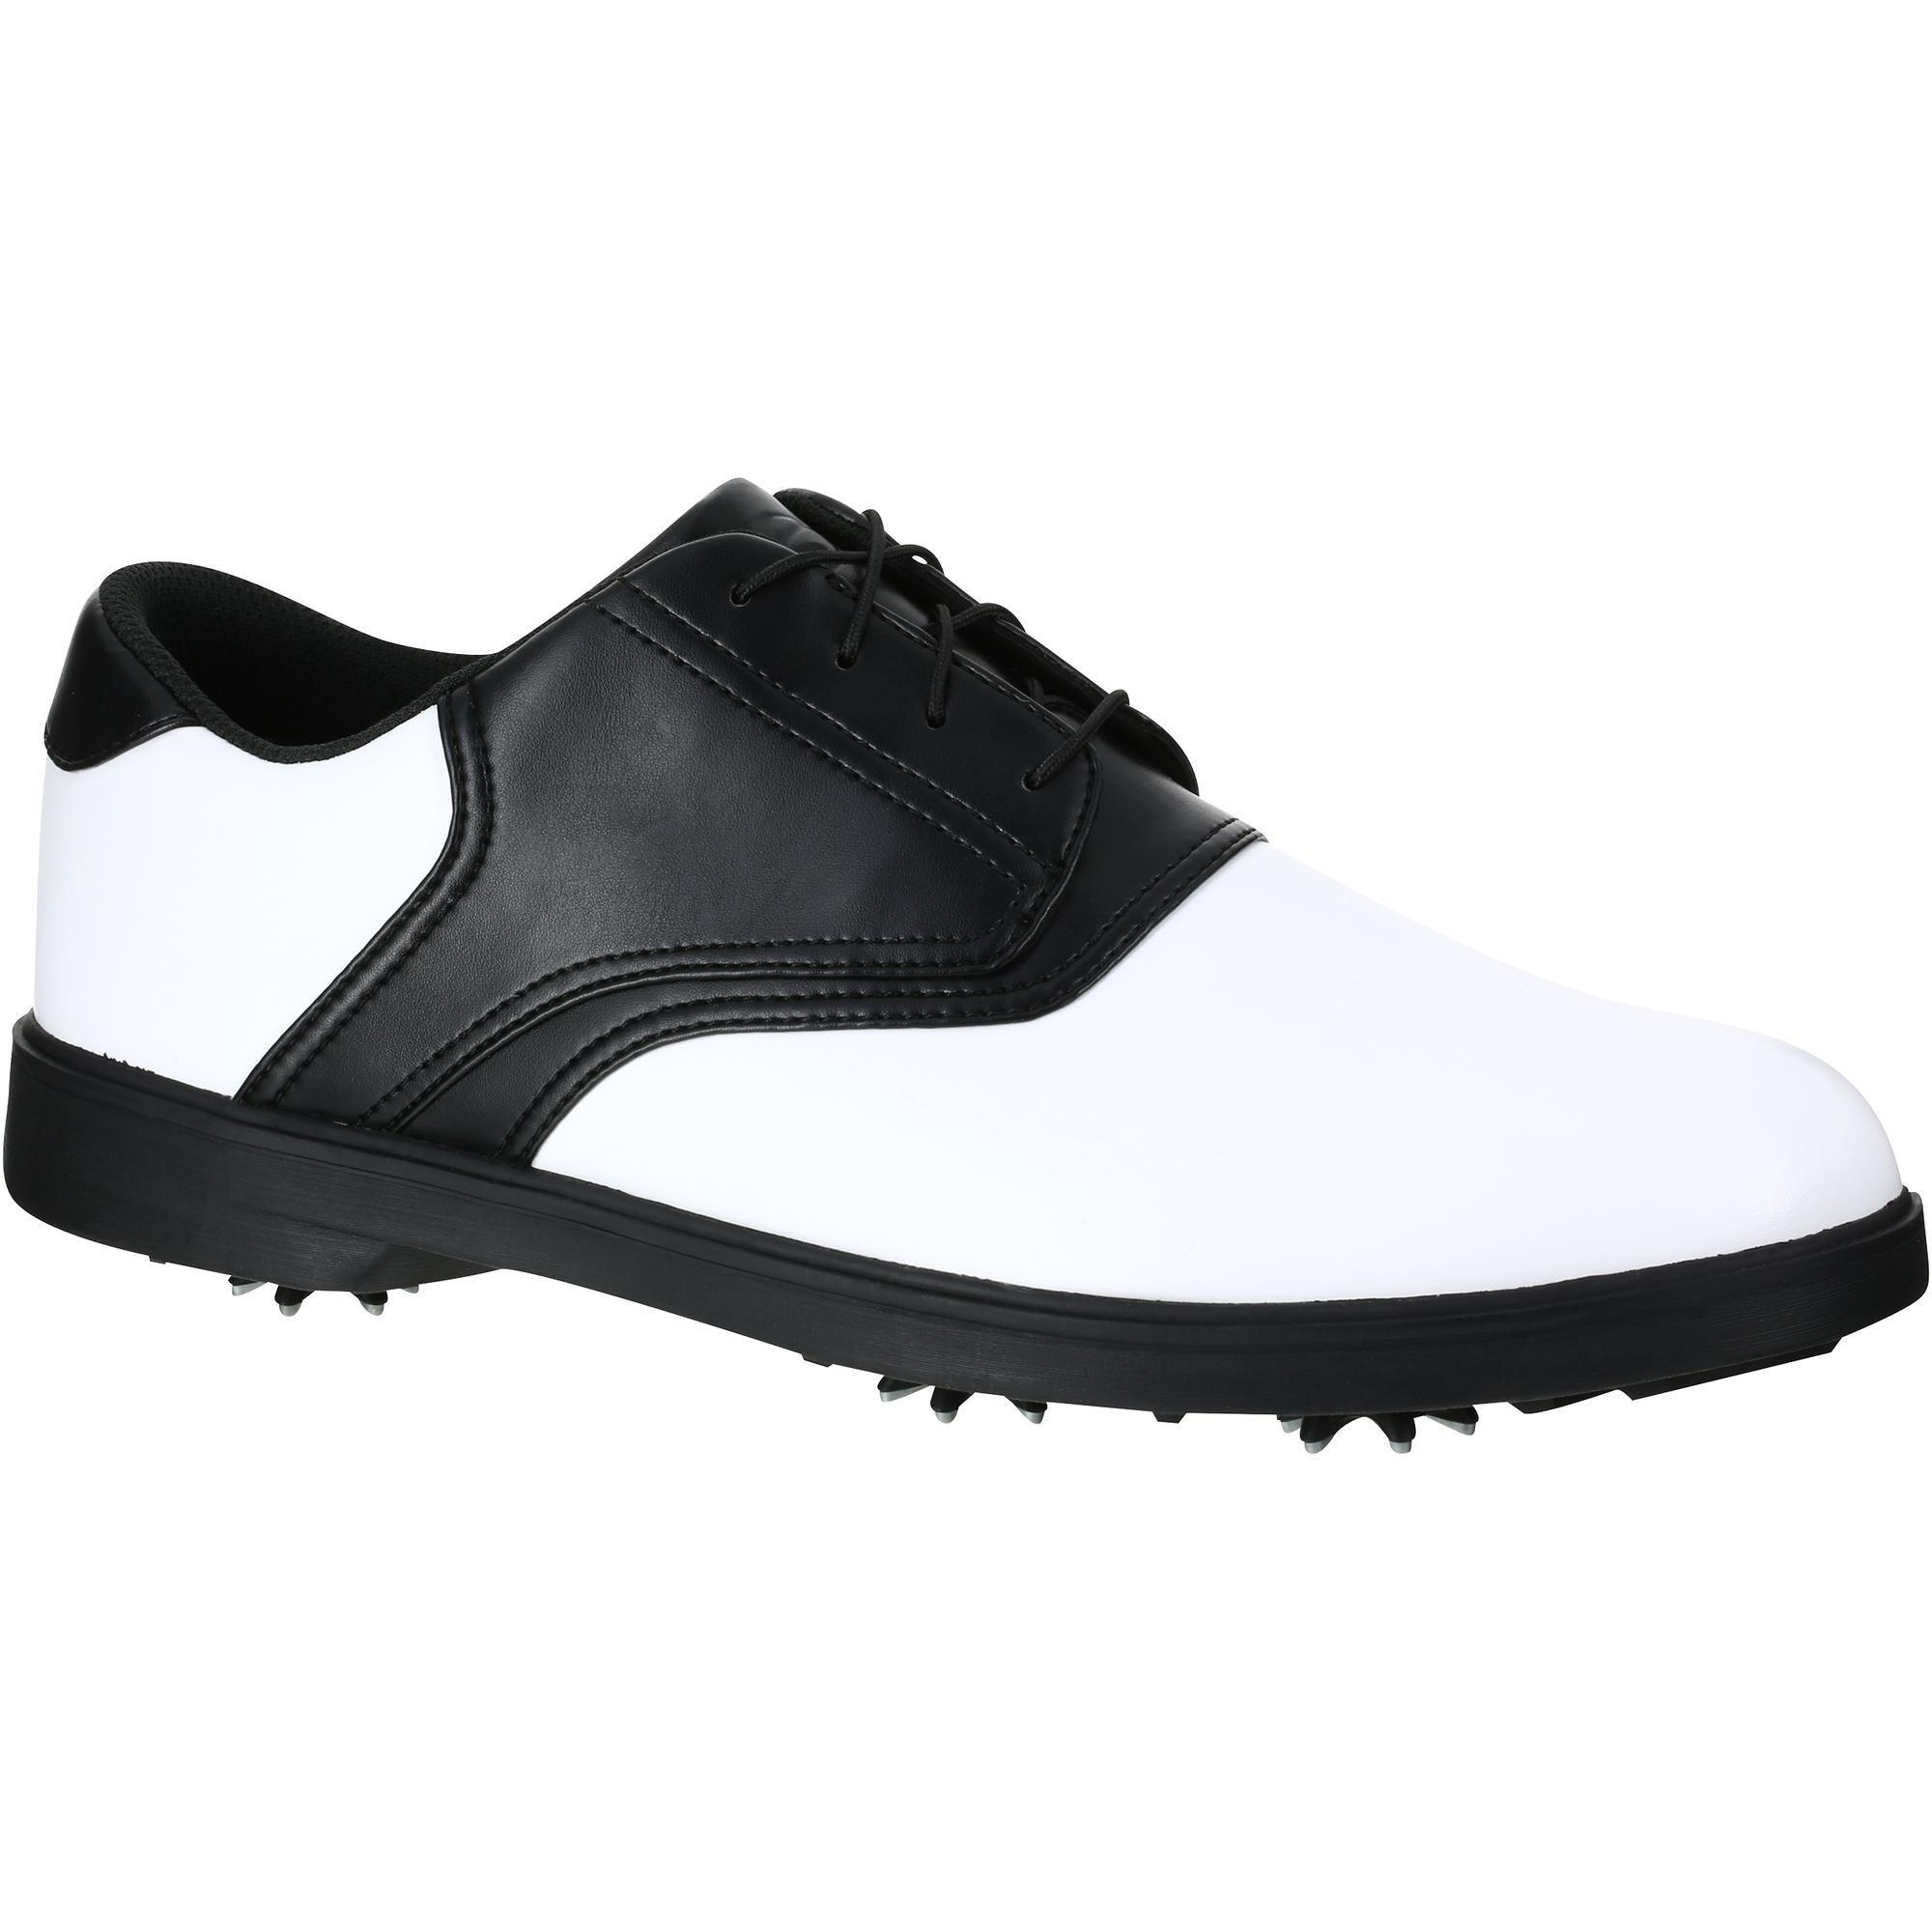 chaussures golf homme spike 500 blanches noires inesis. Black Bedroom Furniture Sets. Home Design Ideas